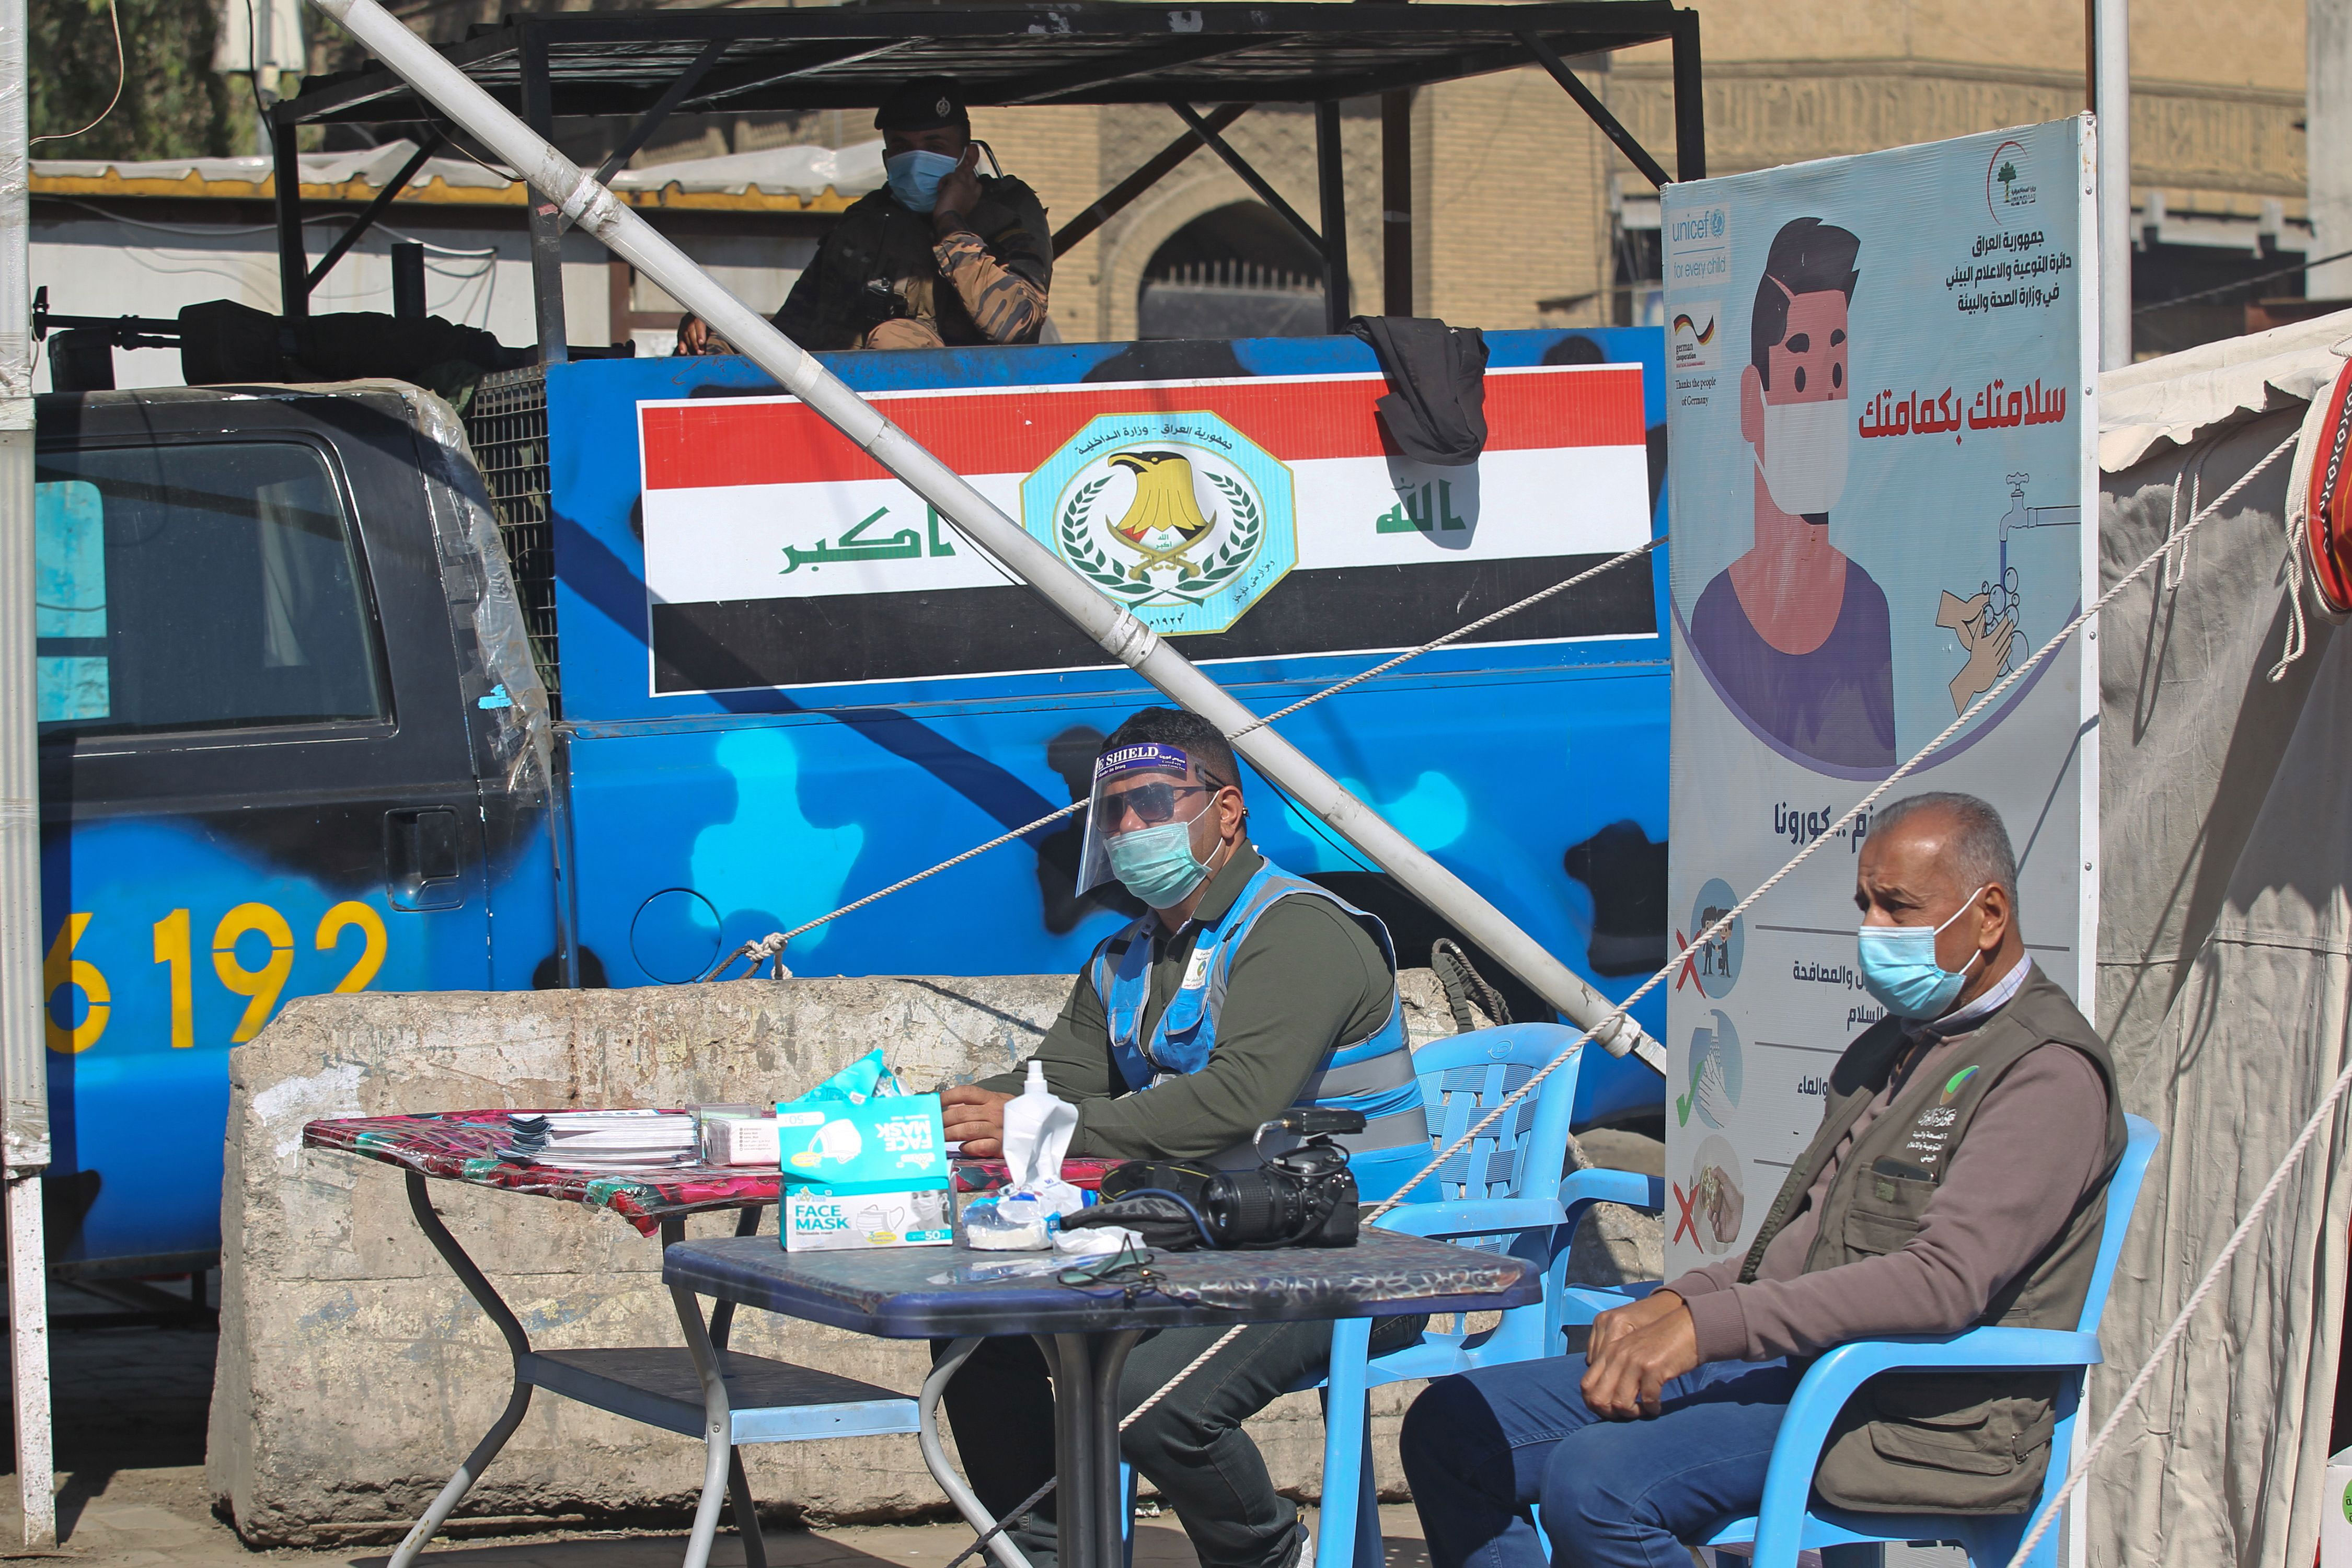 Health workers operate a mobile Covid-19 testing unit at Shorja market in Baghdad, Iraq, on February 22.